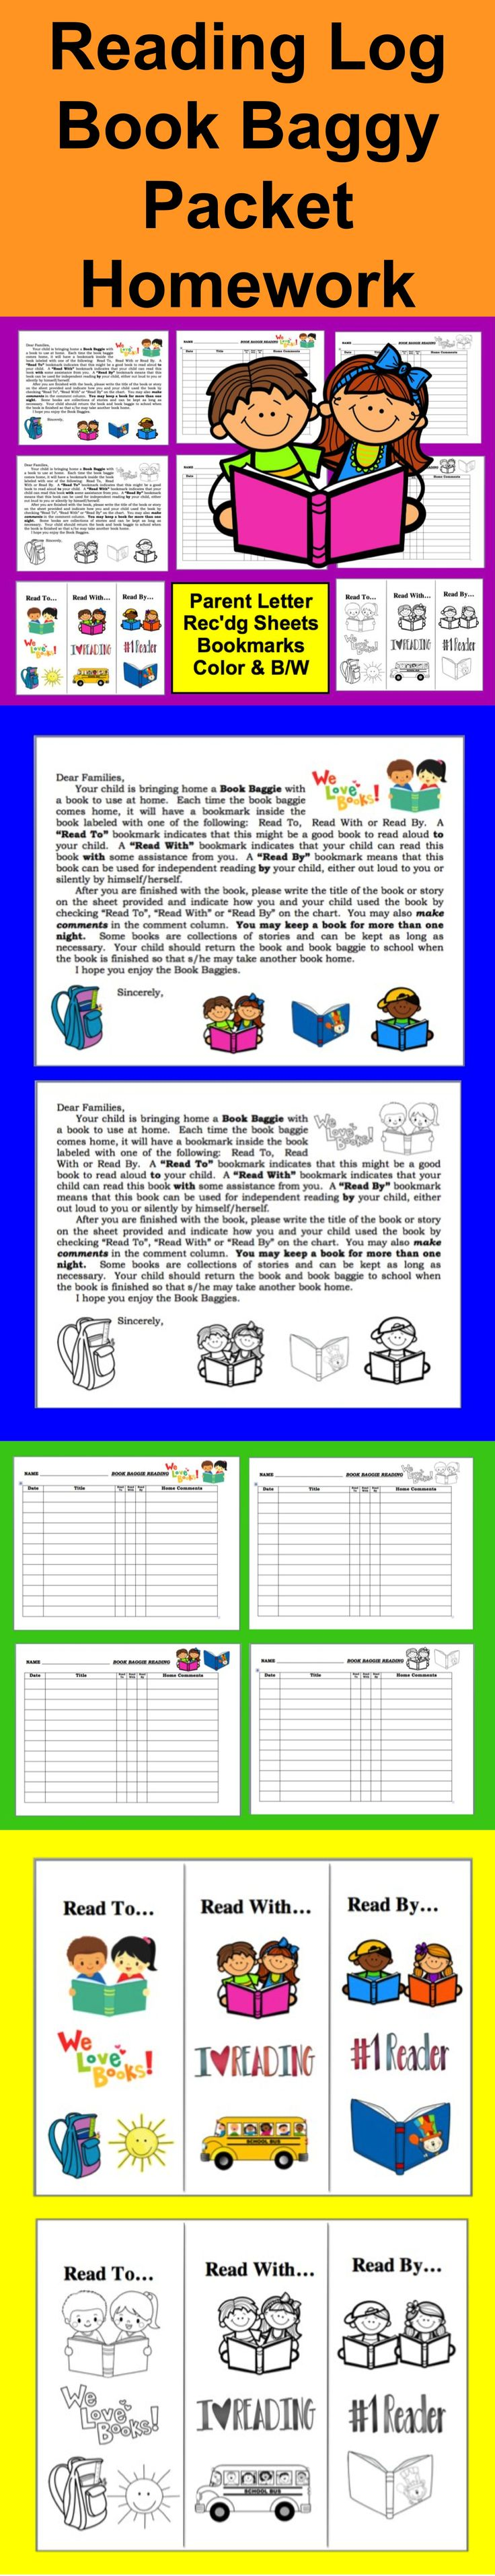 "$ Reading Log Book Baggy and Parent Letter - Reinforce the home/school connection by sending books home with your students. Make the log double sided if you choose. Enclose in a plastic baggie along with a book. A family explanation letter is included. Families check if a book was read ""by"" their child, ""with"" their child or ""to"" their child. That way, you can have days when students select their own books to bring home regardless of level and other days that you assign books.  Bookmarks…"